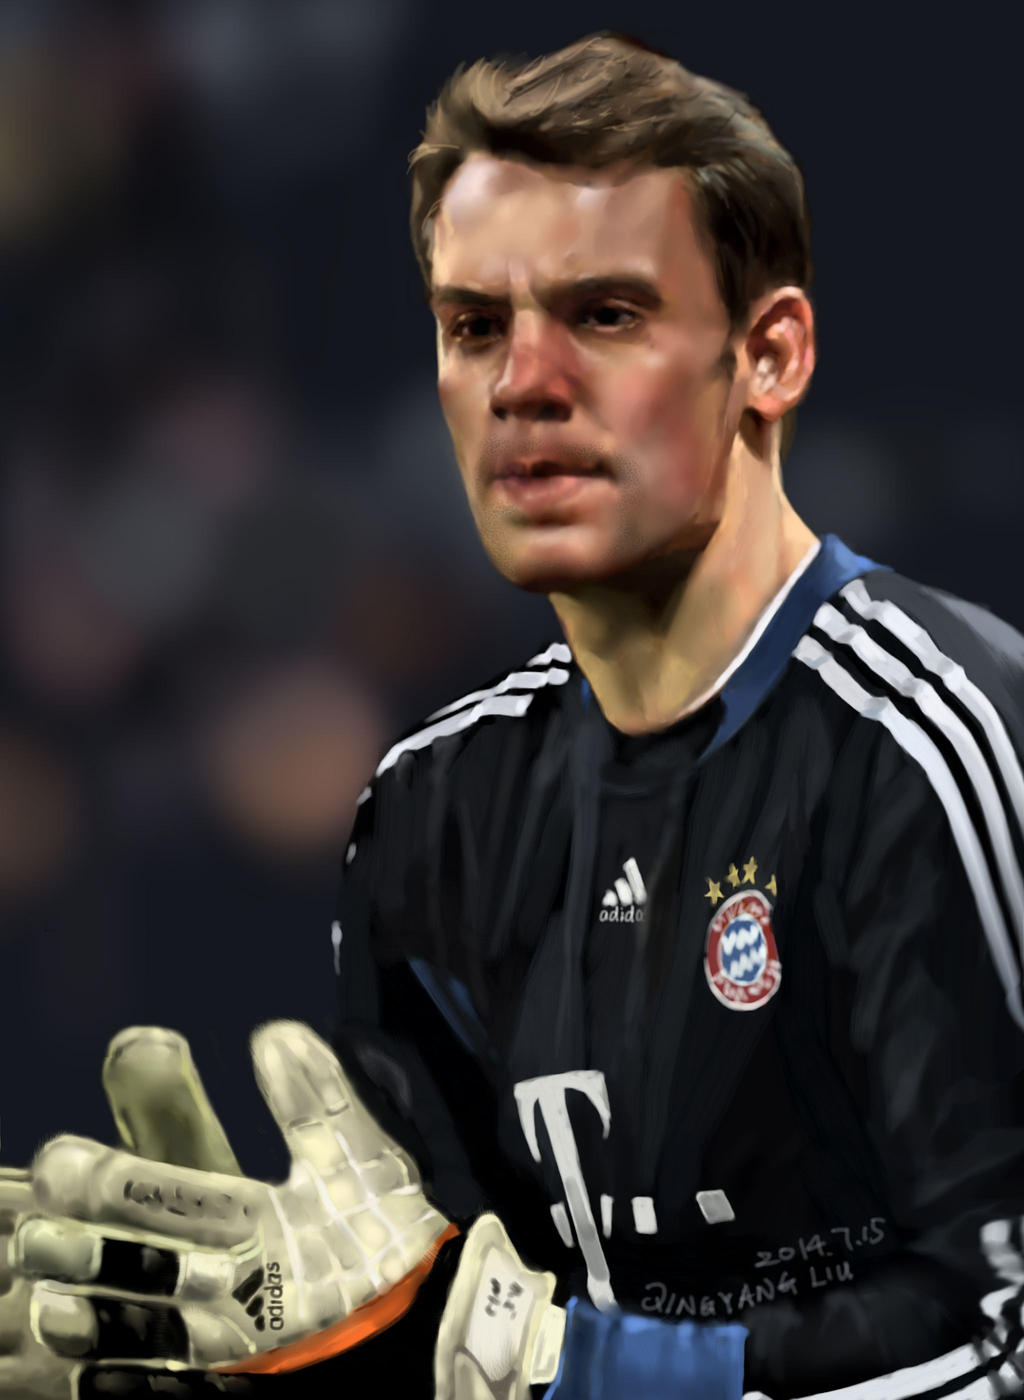 Manuel Neuer by buriedflowers on DeviantArt